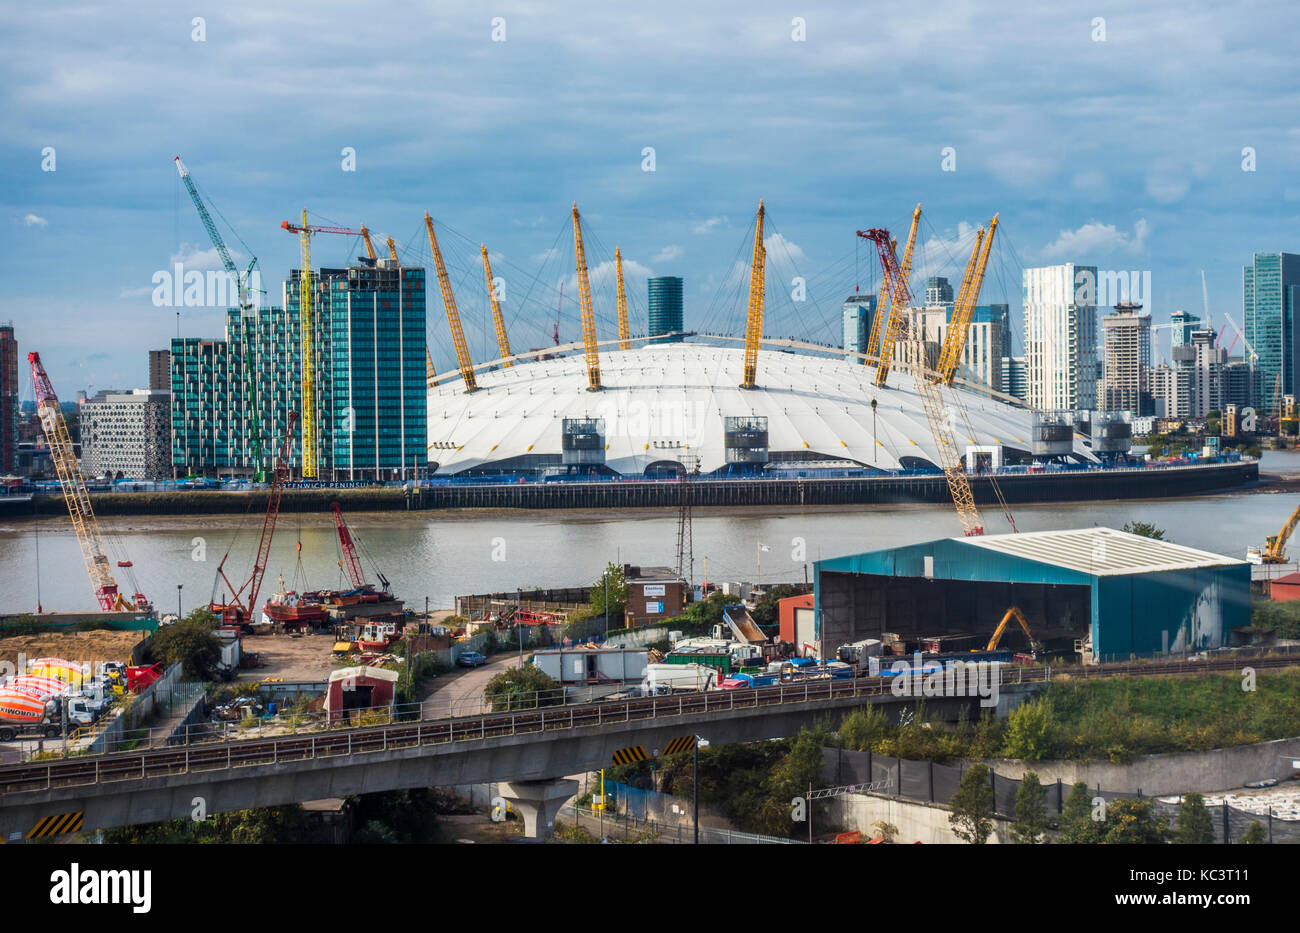 Next to the River Thames, opposite the O2 Arena in North Greenwich, the premises of Docklands Waste Recycling Limited, - Stock Image